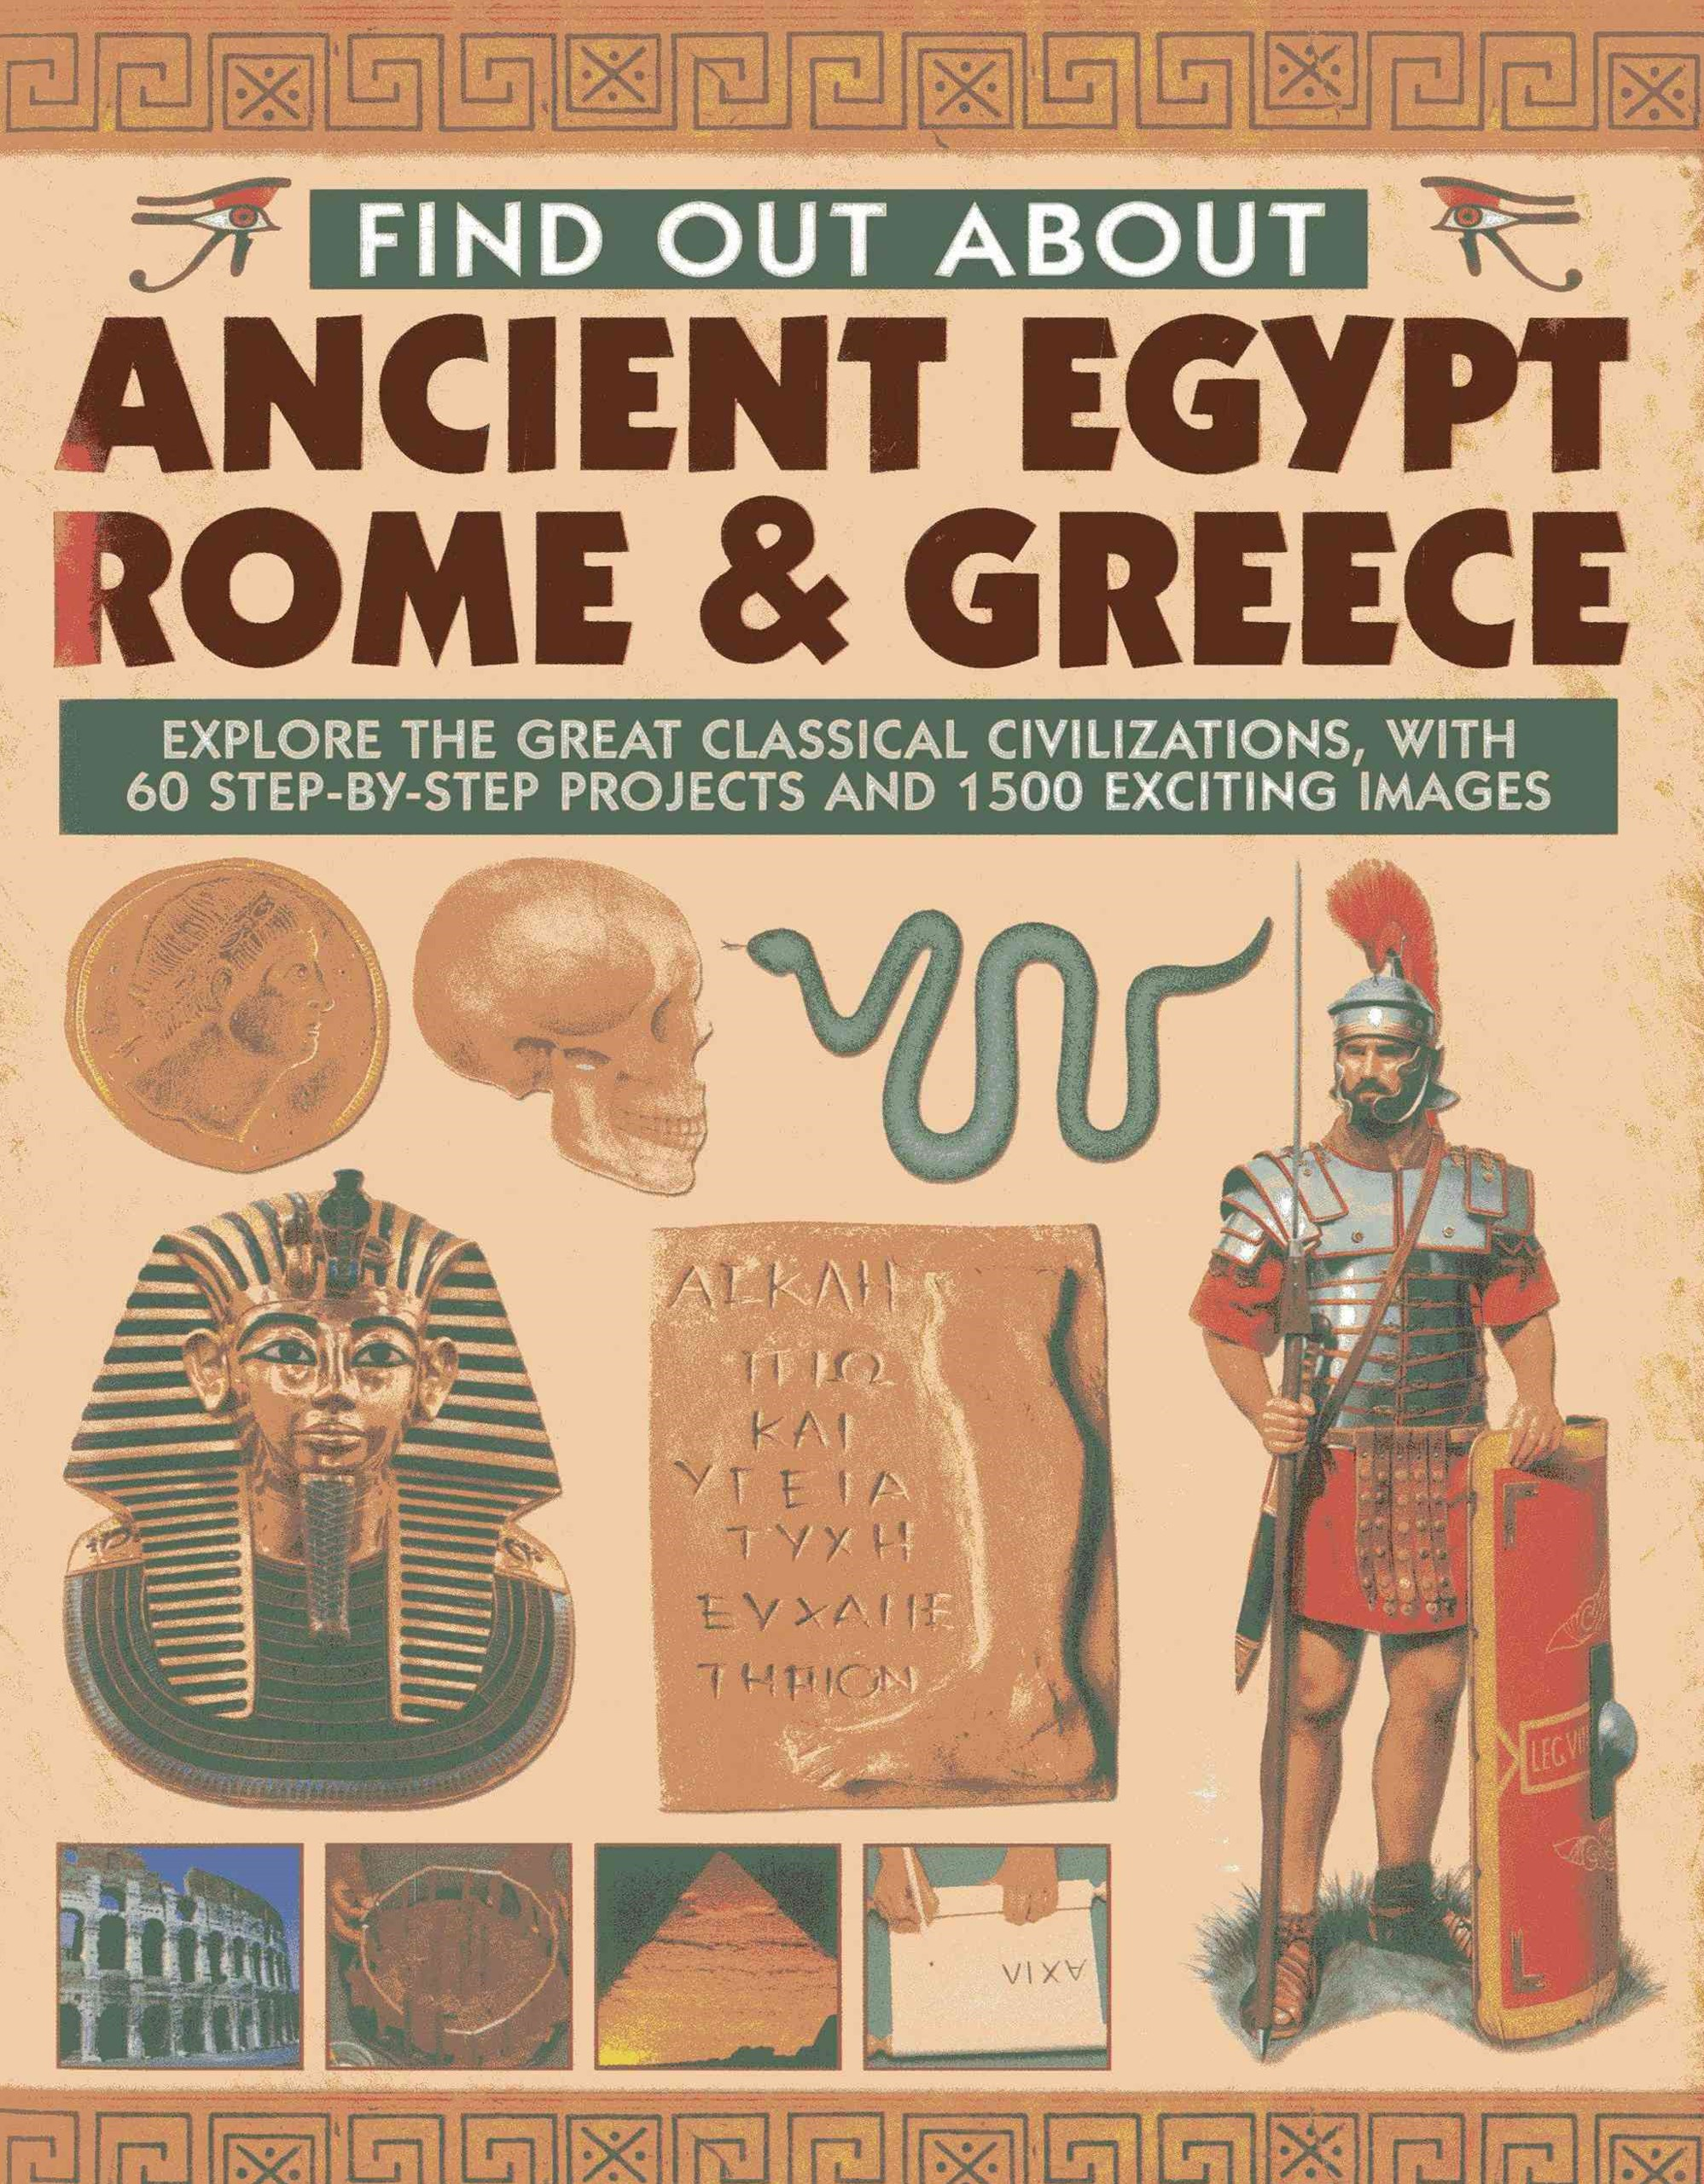 Find Out About Ancient Egypt, Rome & Greece